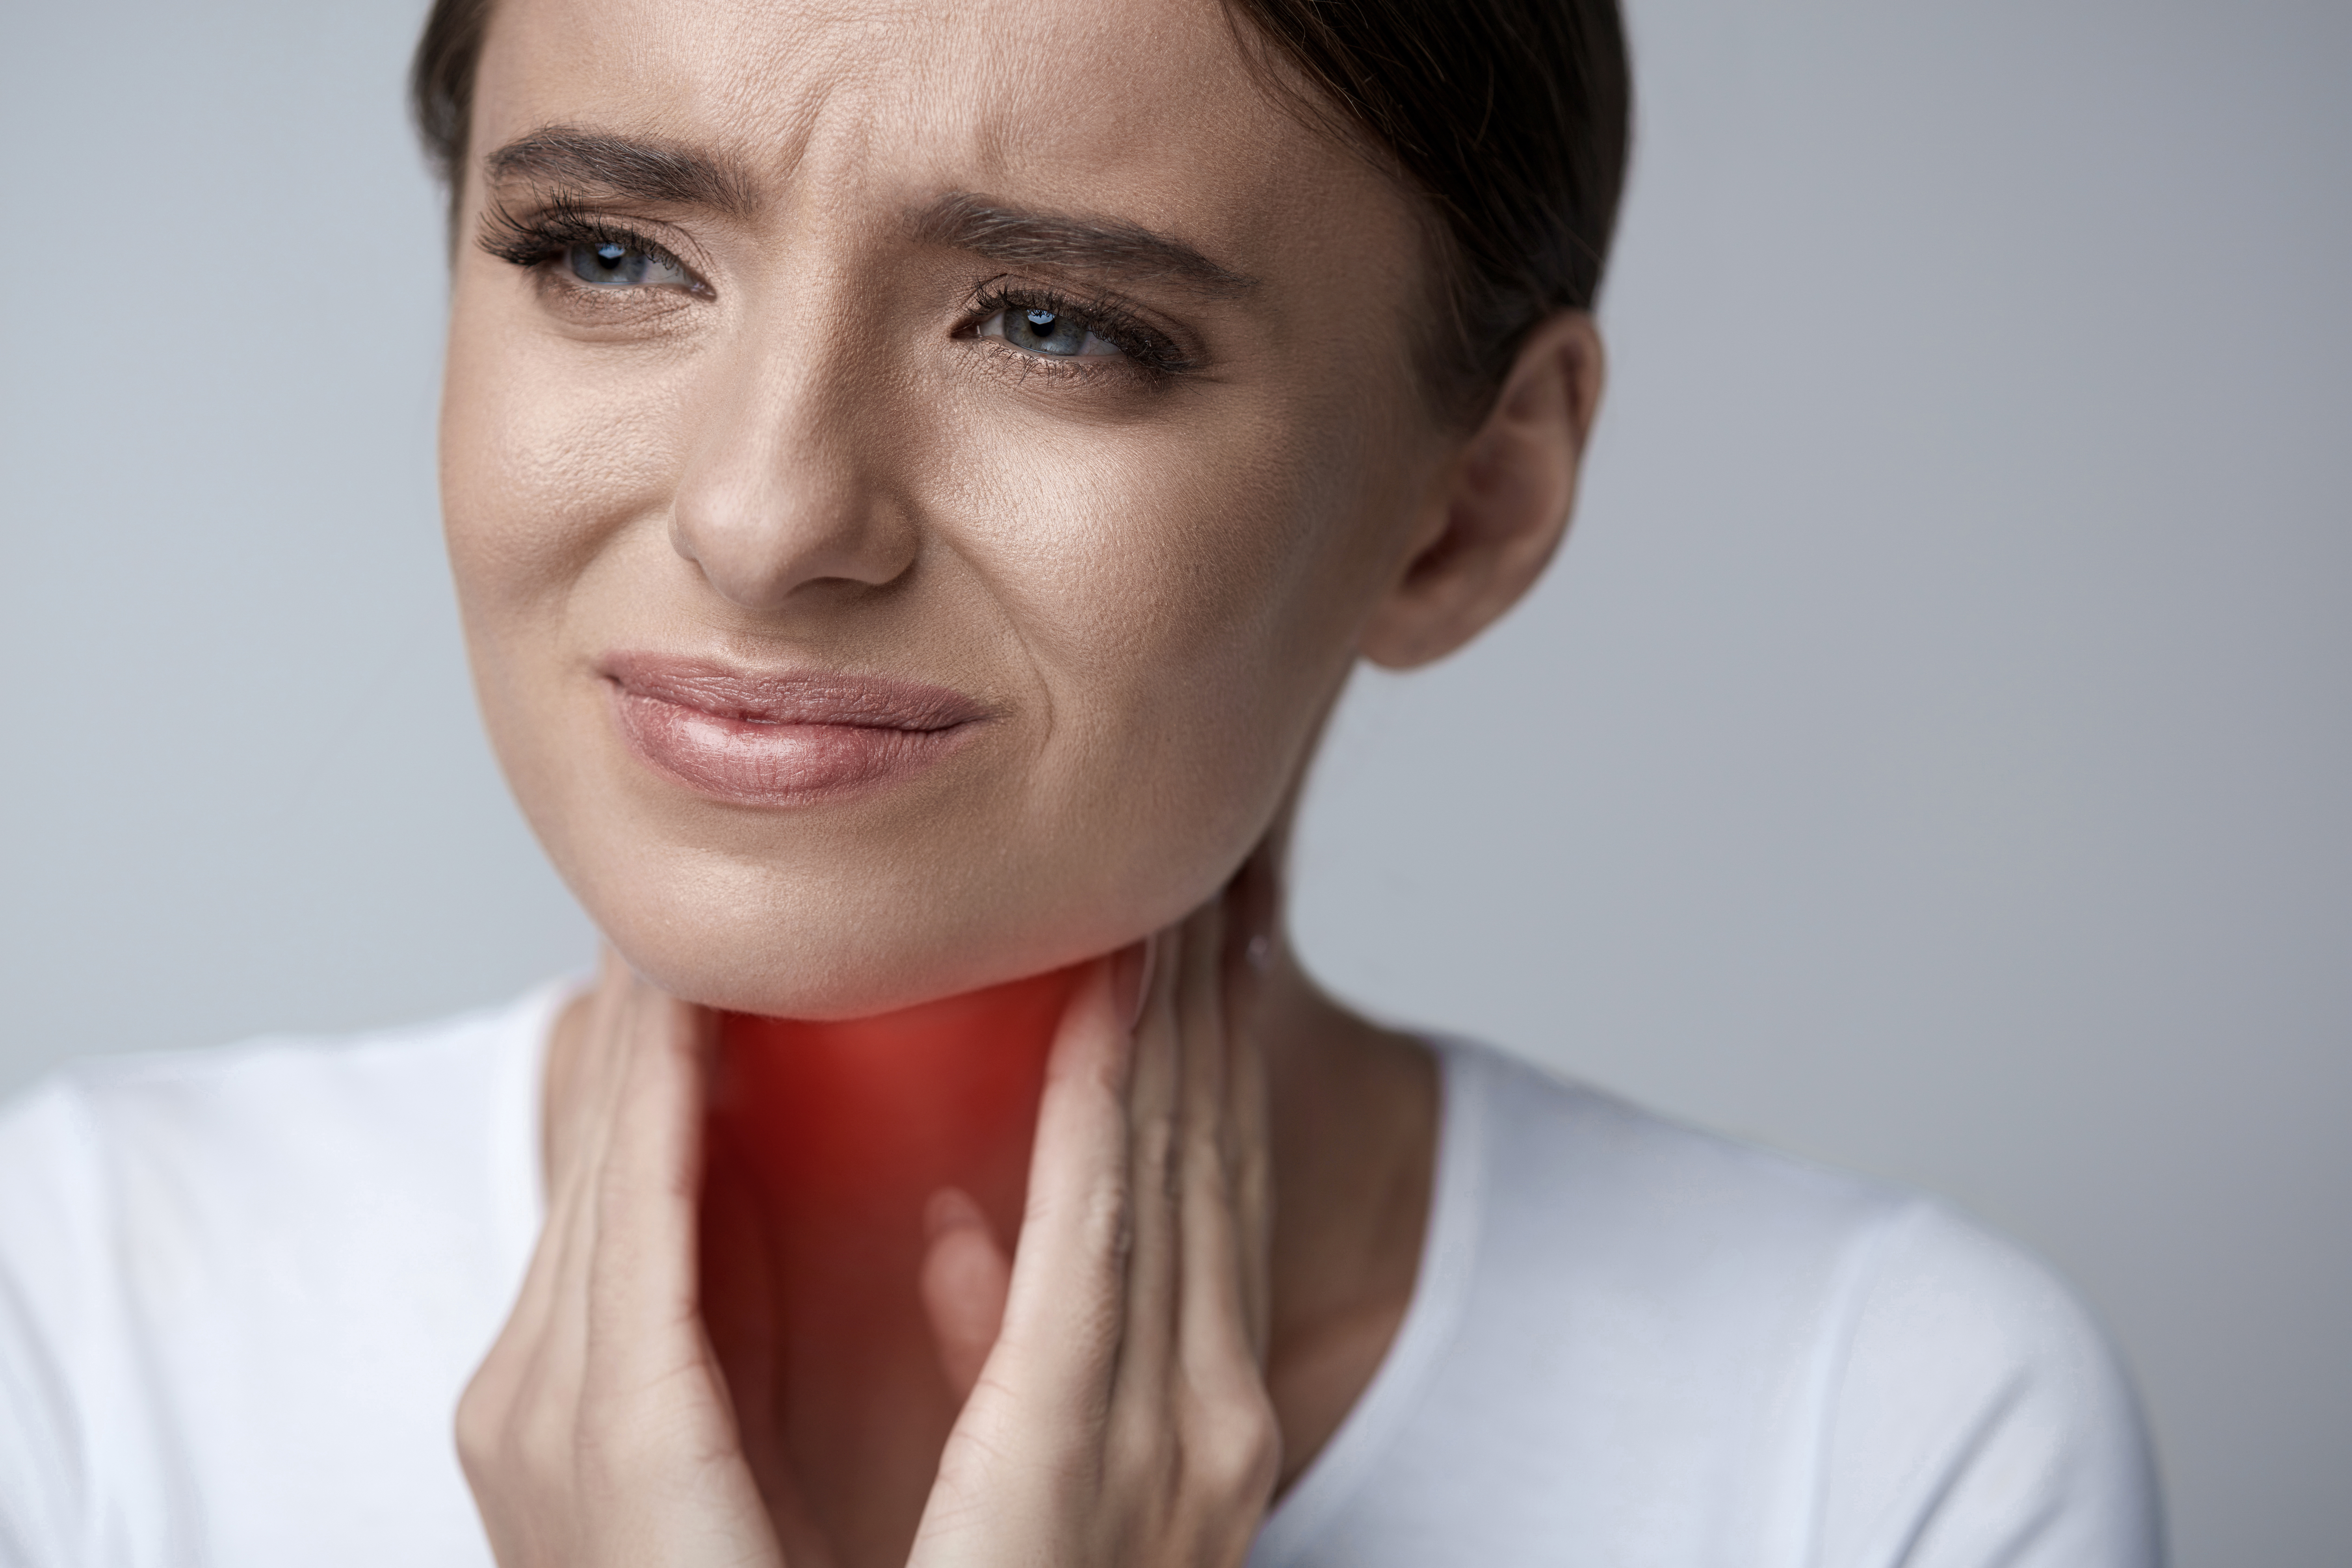 Foul Taste in Back of Throat: Causes, Solutions